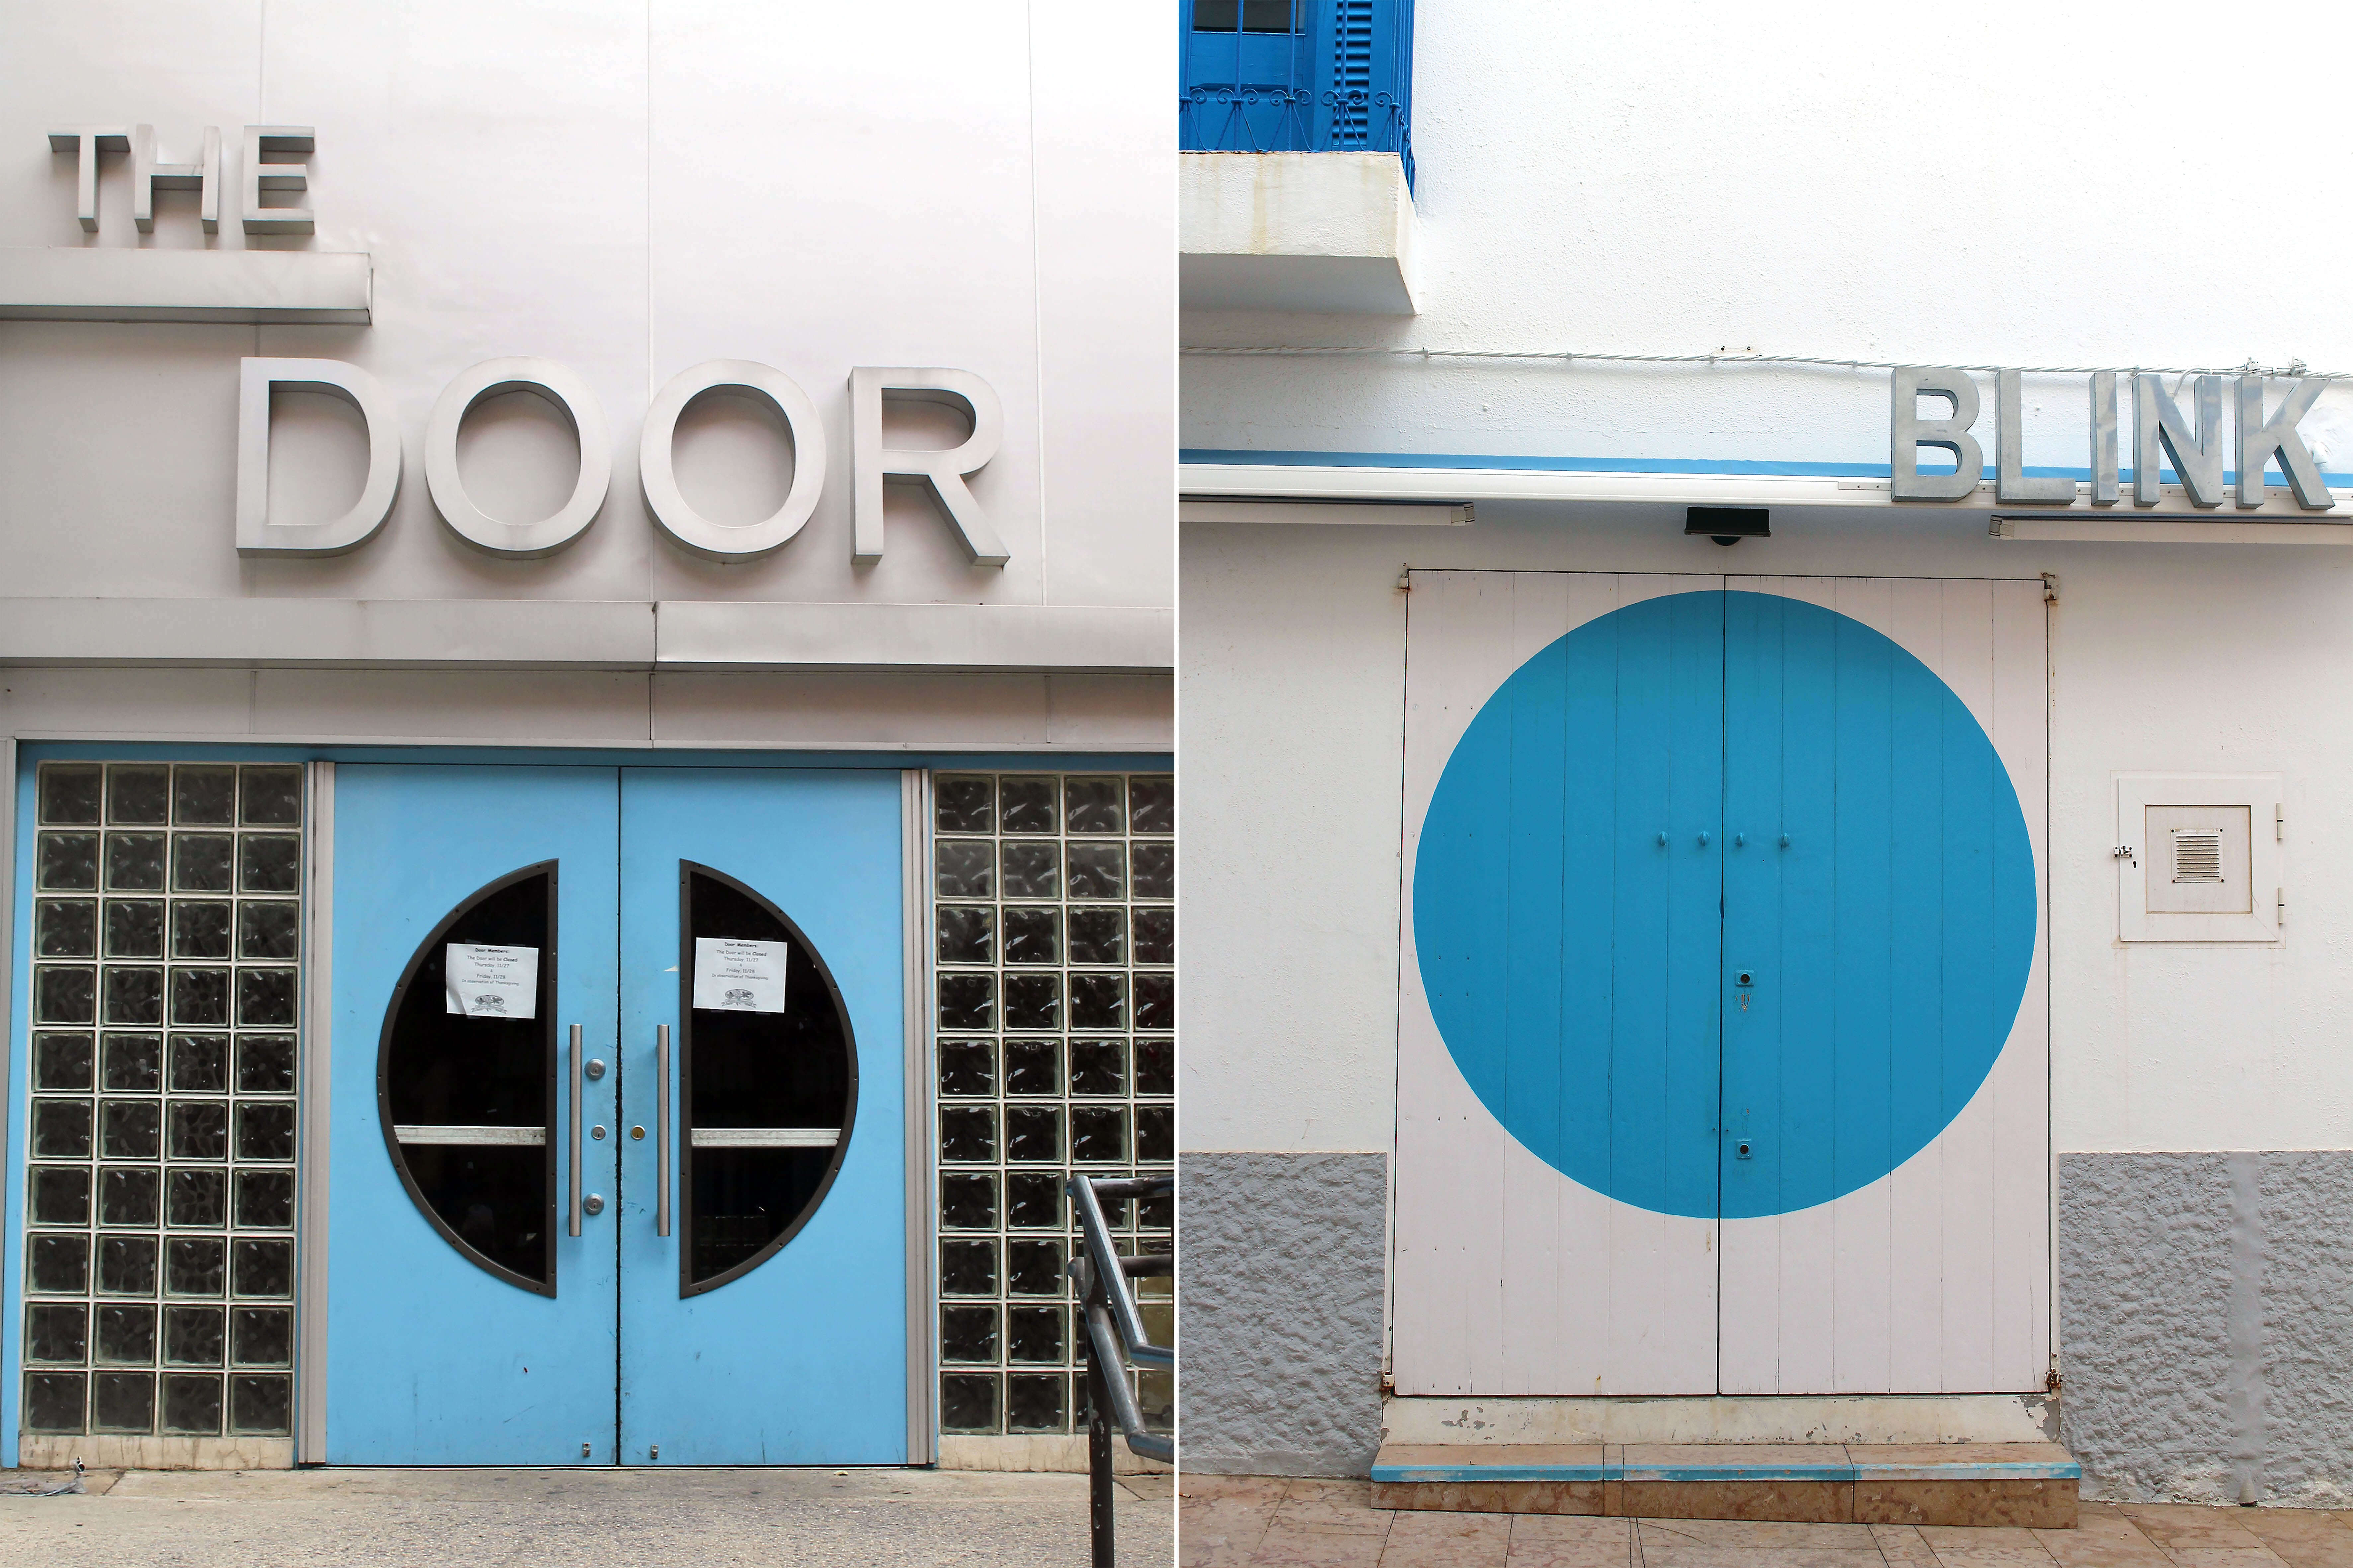 Thedoors artwork comparing a blue door with circular elements (from The Door in Manhattan, New York) and the door of the Blink shop in Formentera, also with blue and circular elements. Forming part of the Formenhattan exhibition.